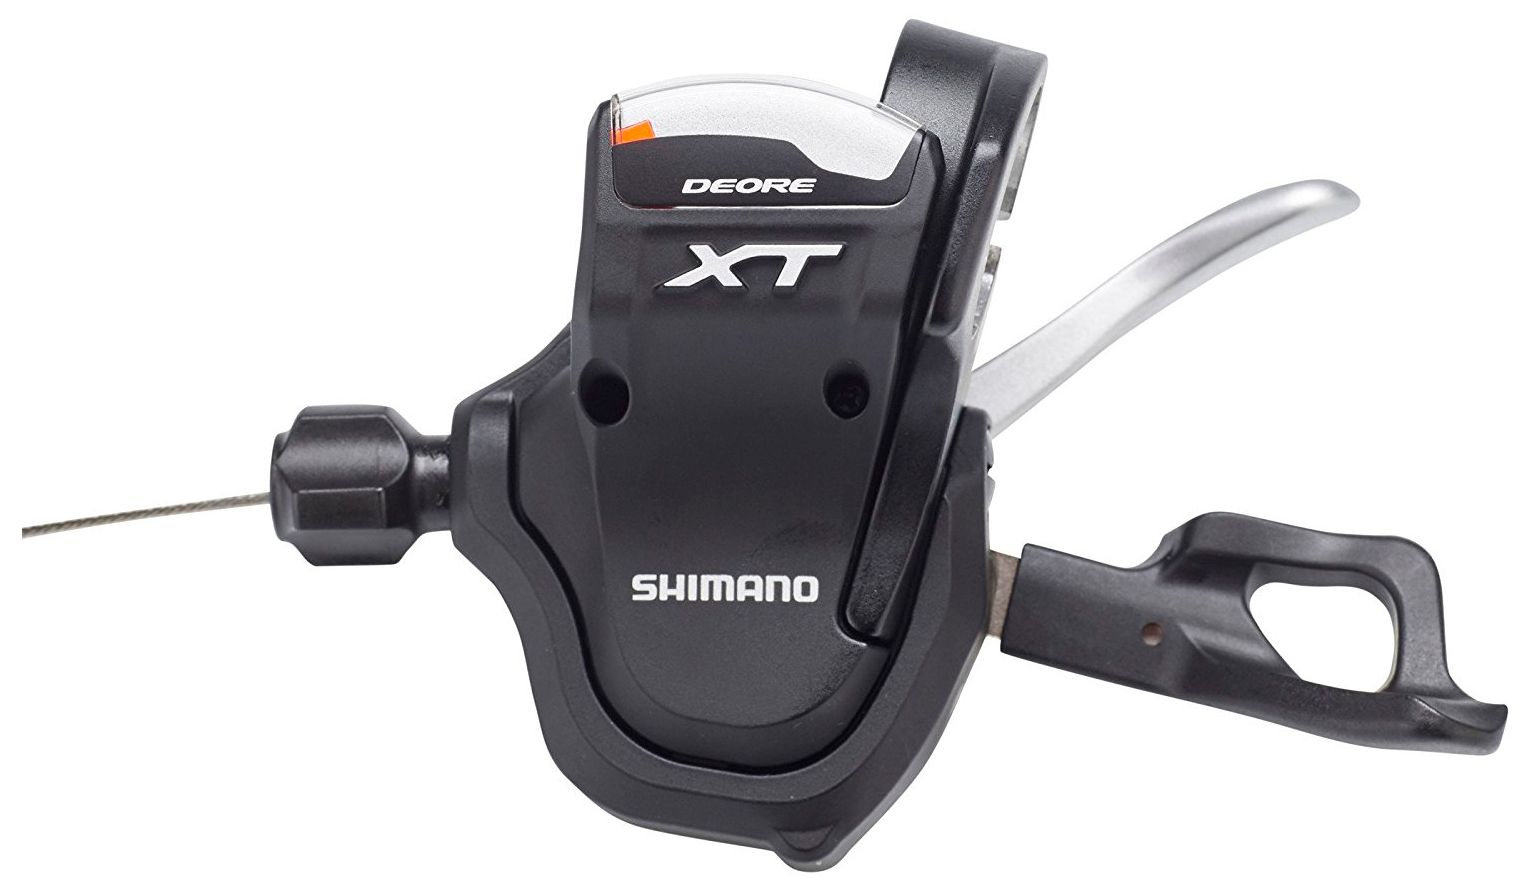 Запчасть Shimano Deore XT M780, лев, 3 ск. shimano deore xt m771 silver 9s 27s speed mtb bicycle rear derailleur part long cage